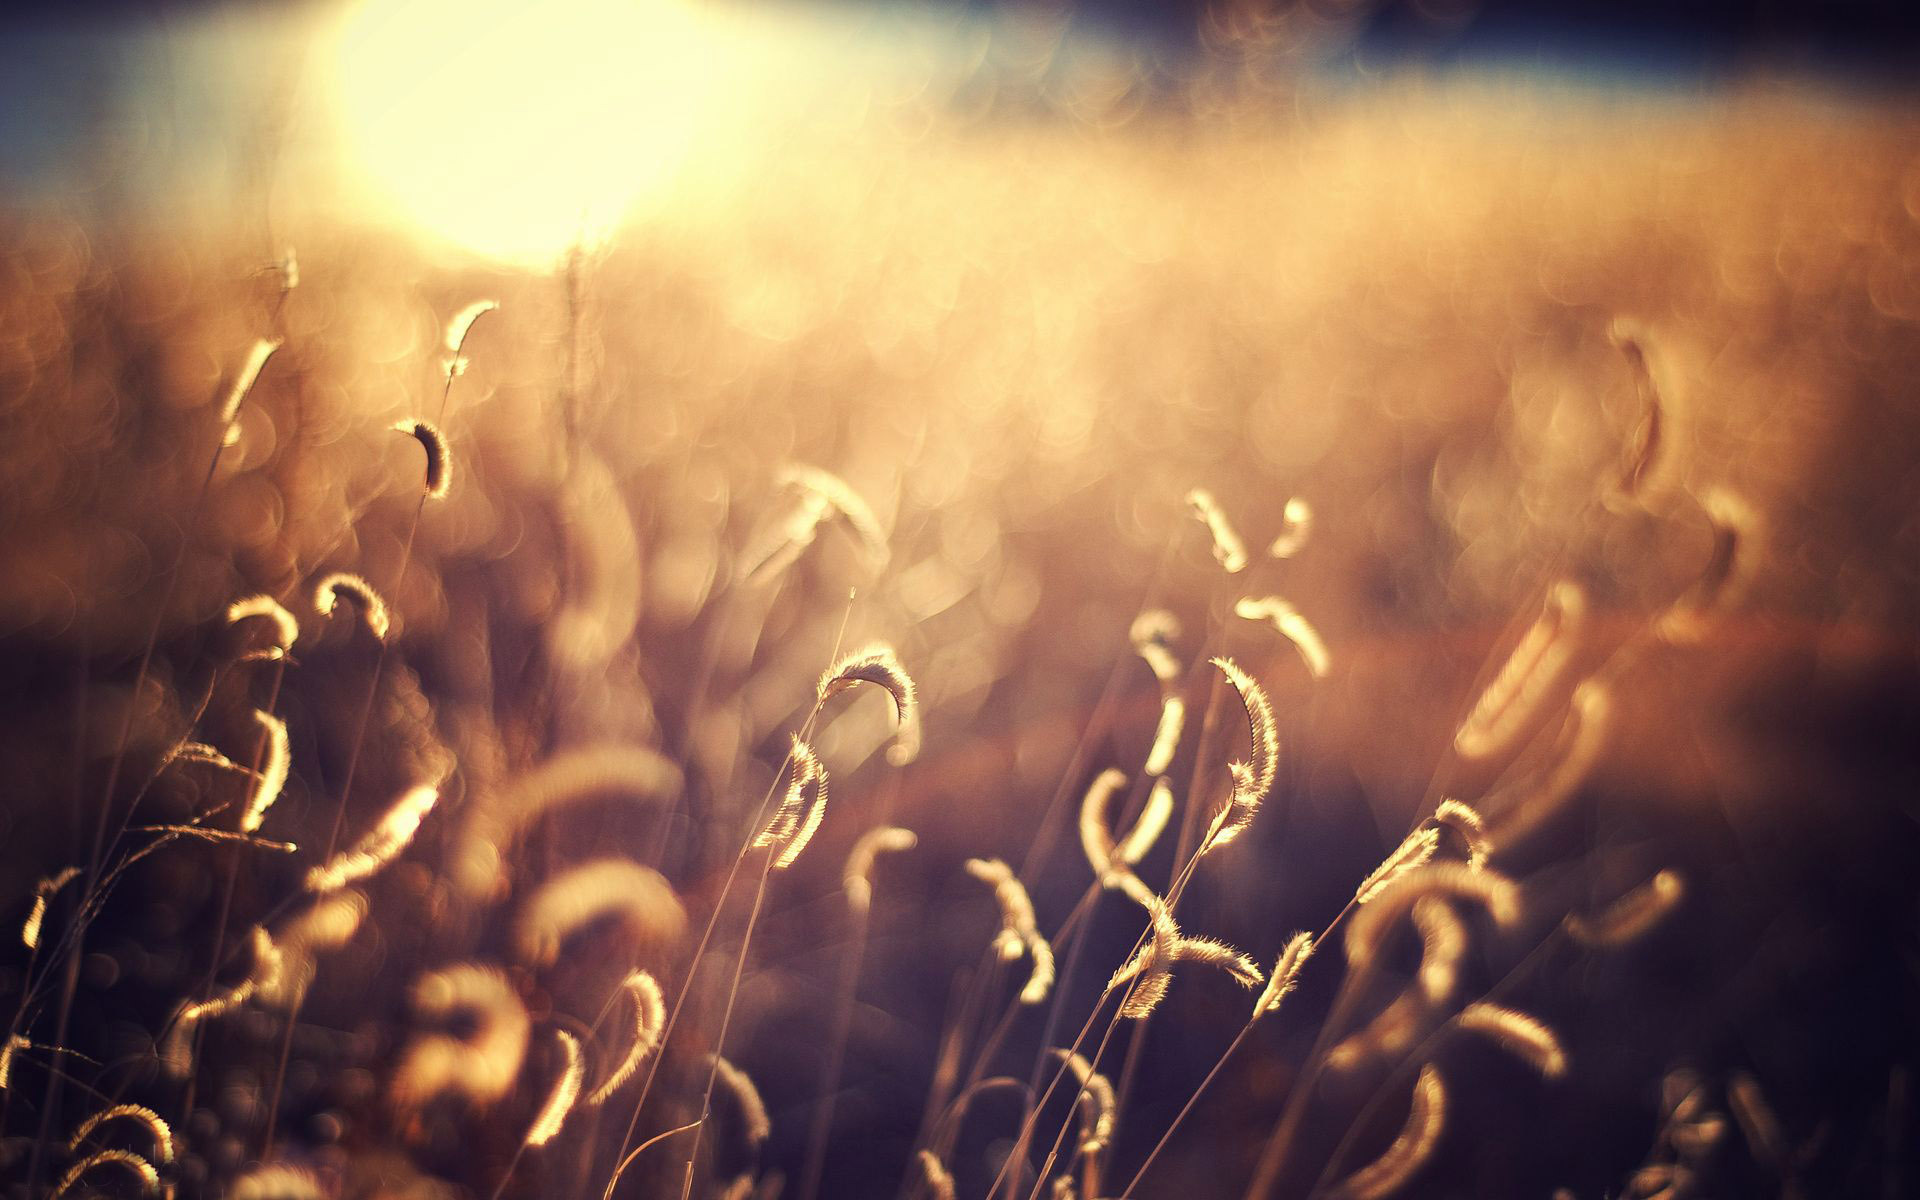 Out of focus golden field wallpaper